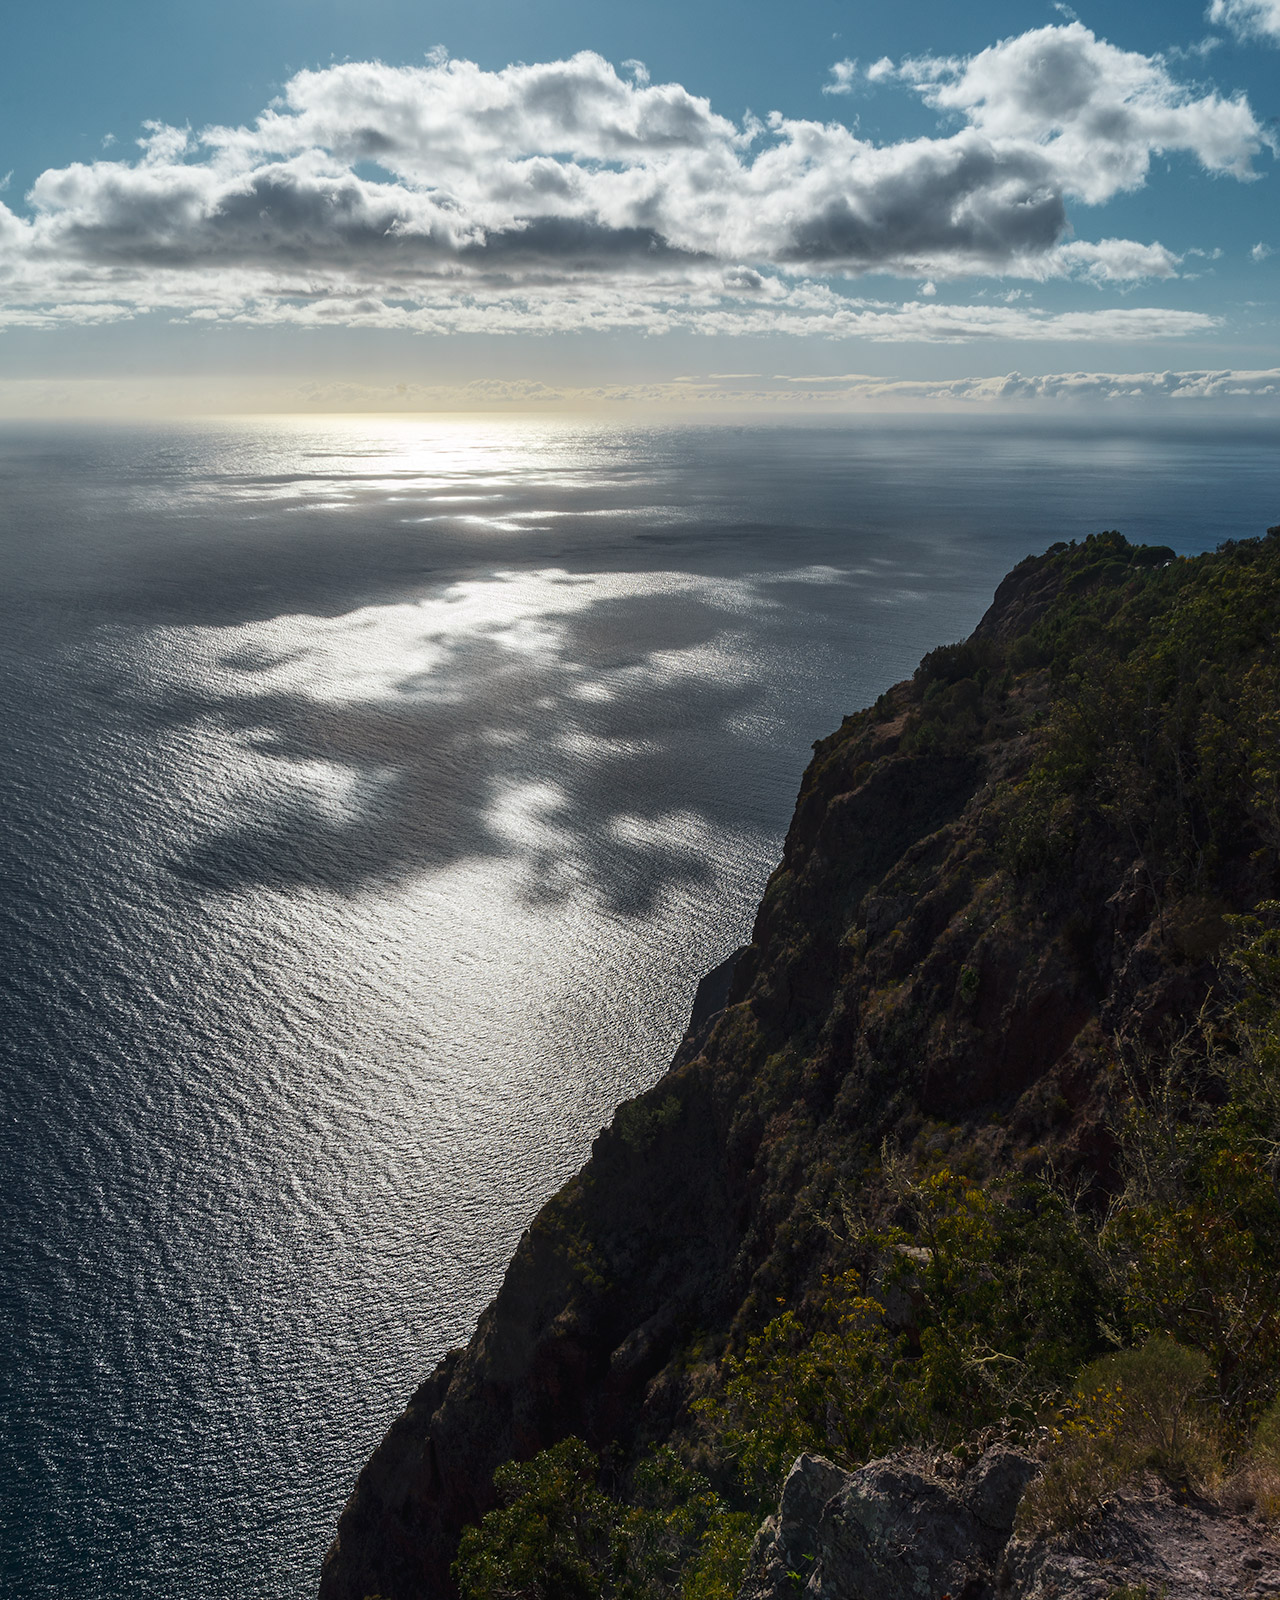 Cabo Girão - the highest cape in Europe